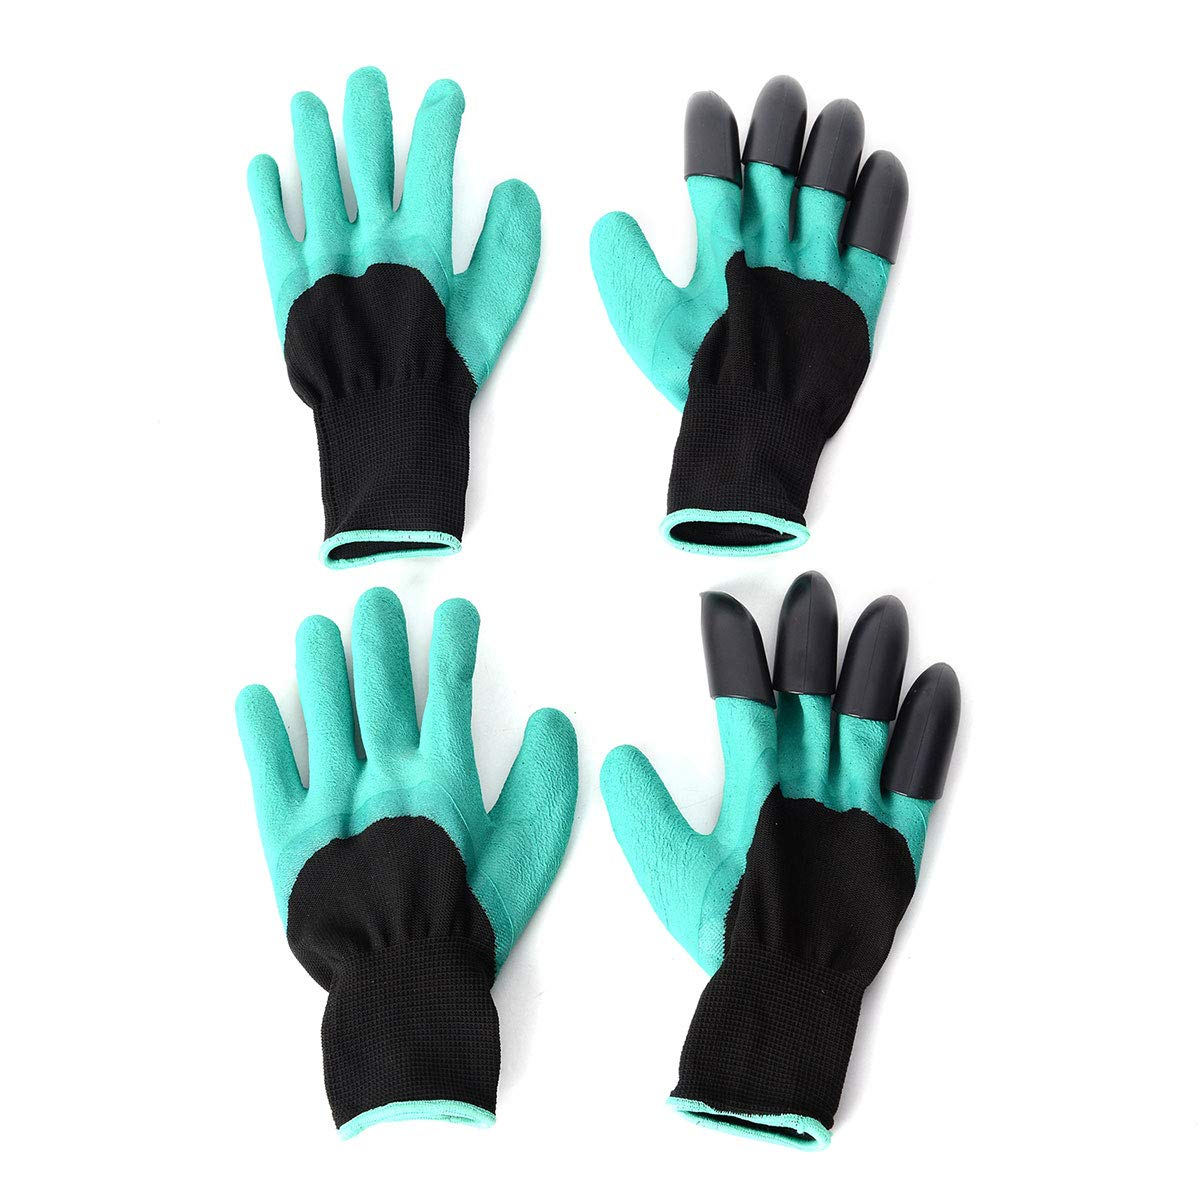 Shop LC Delivering Joy Home Gardening Nursery Digging Planting Garden Work Gloves with Claws Puncture Resistant Breathable Waterproof Set of 2